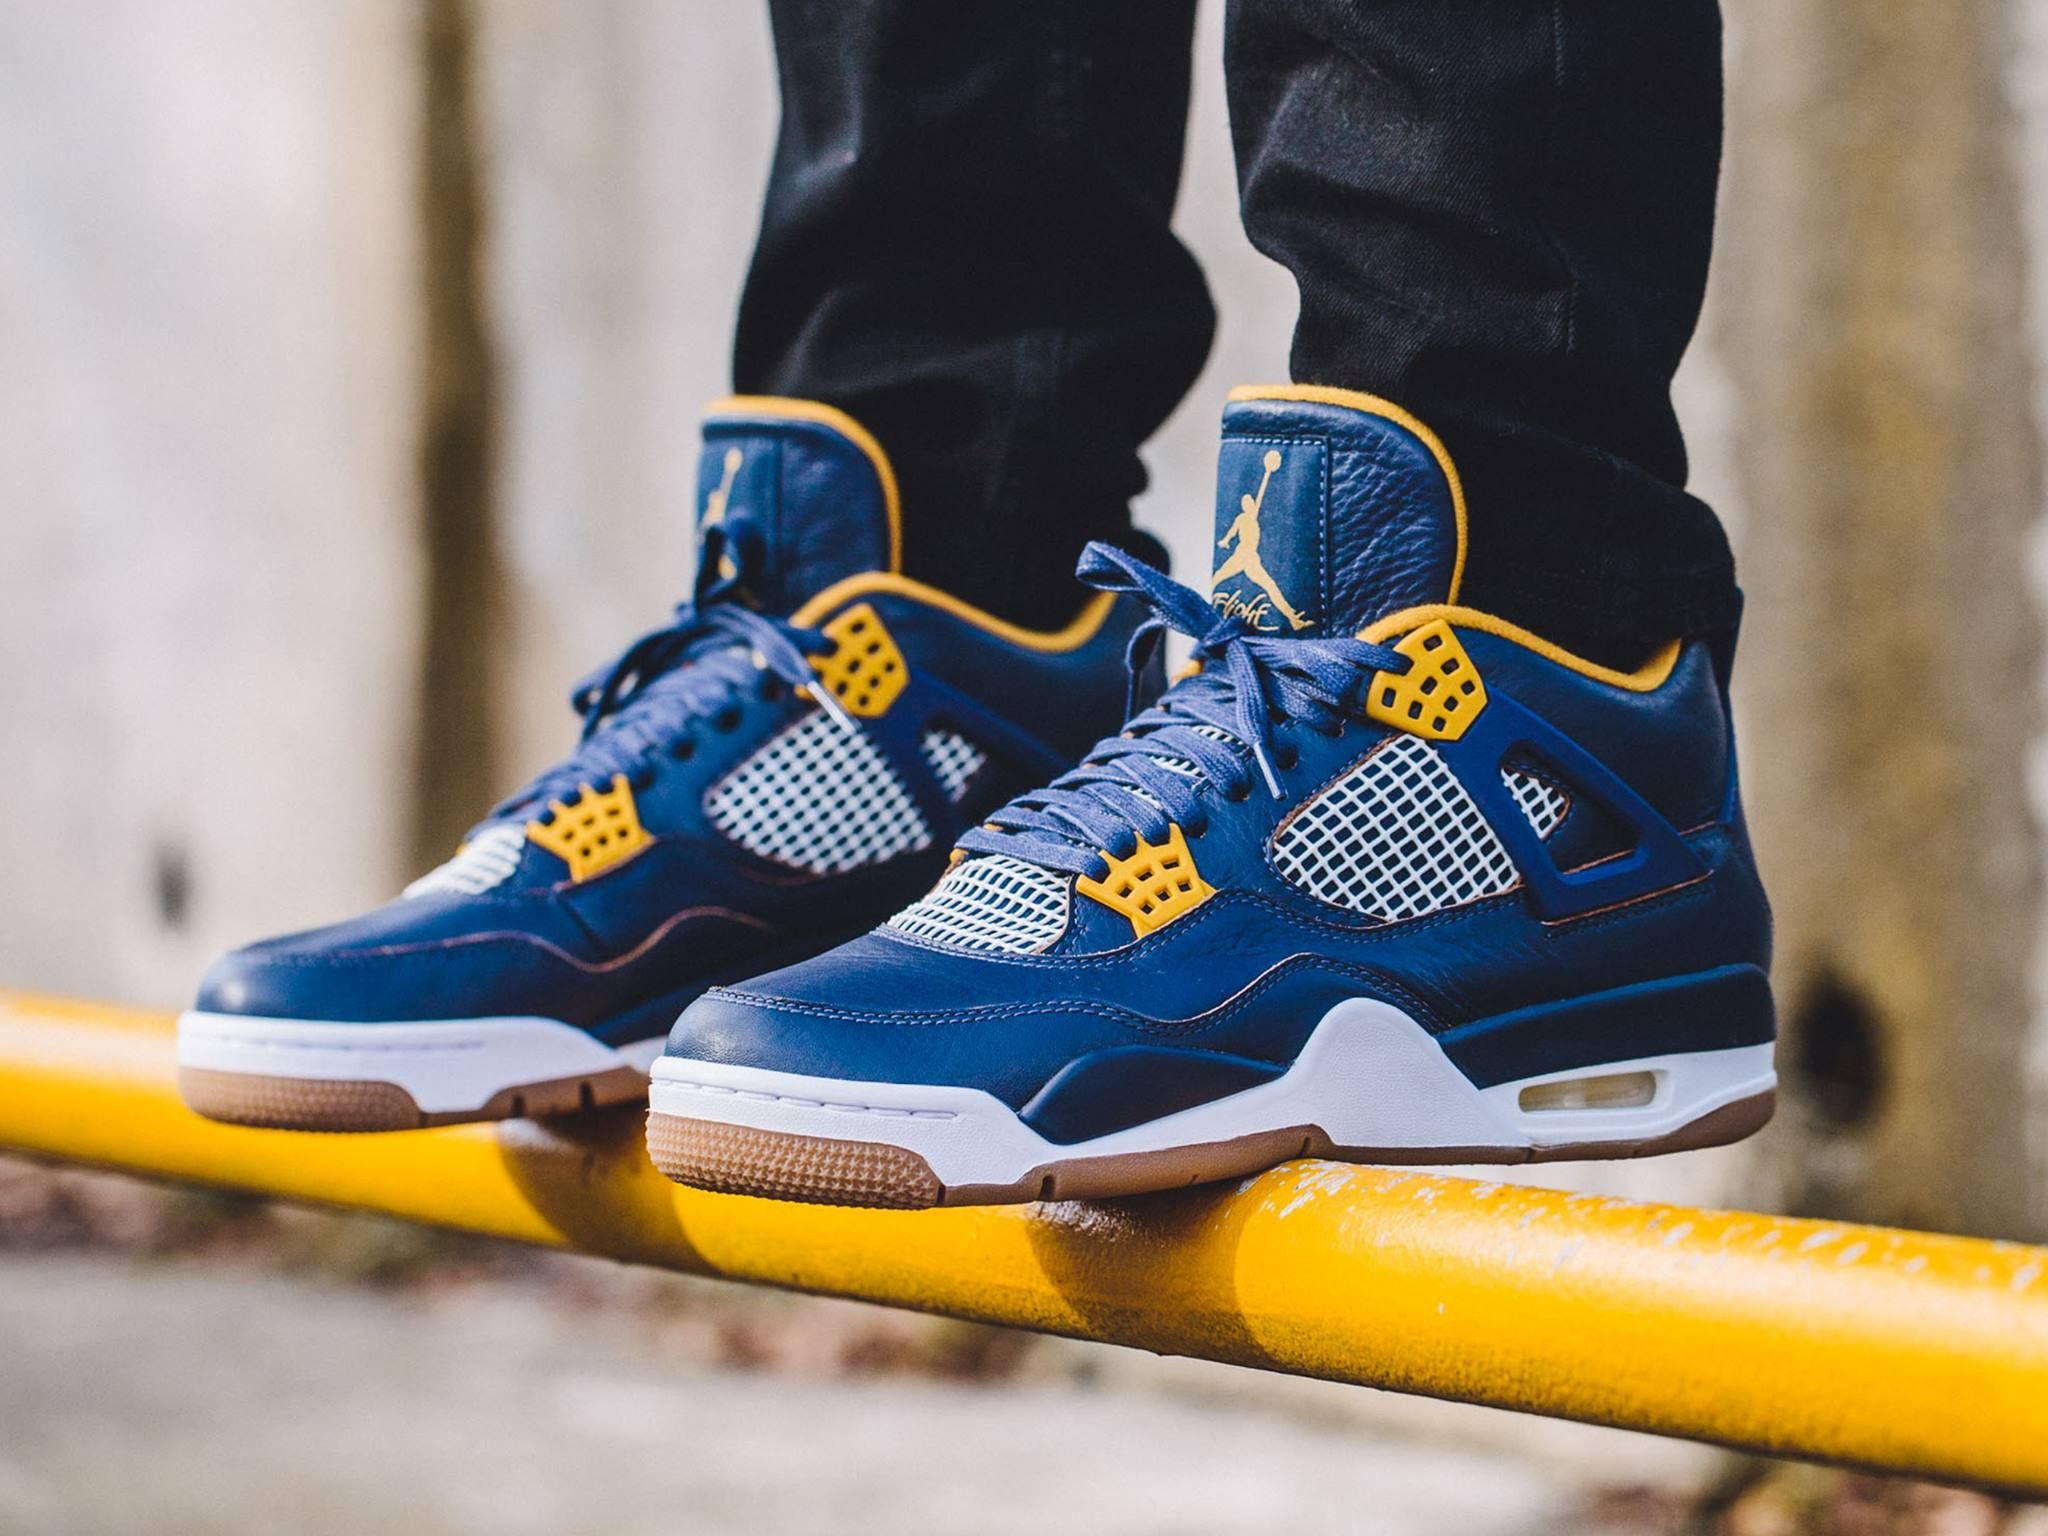 Michigan Colorway Of The Air Jordan Retro Iv Air Jordans Jordan Retro 4 Jordan 4